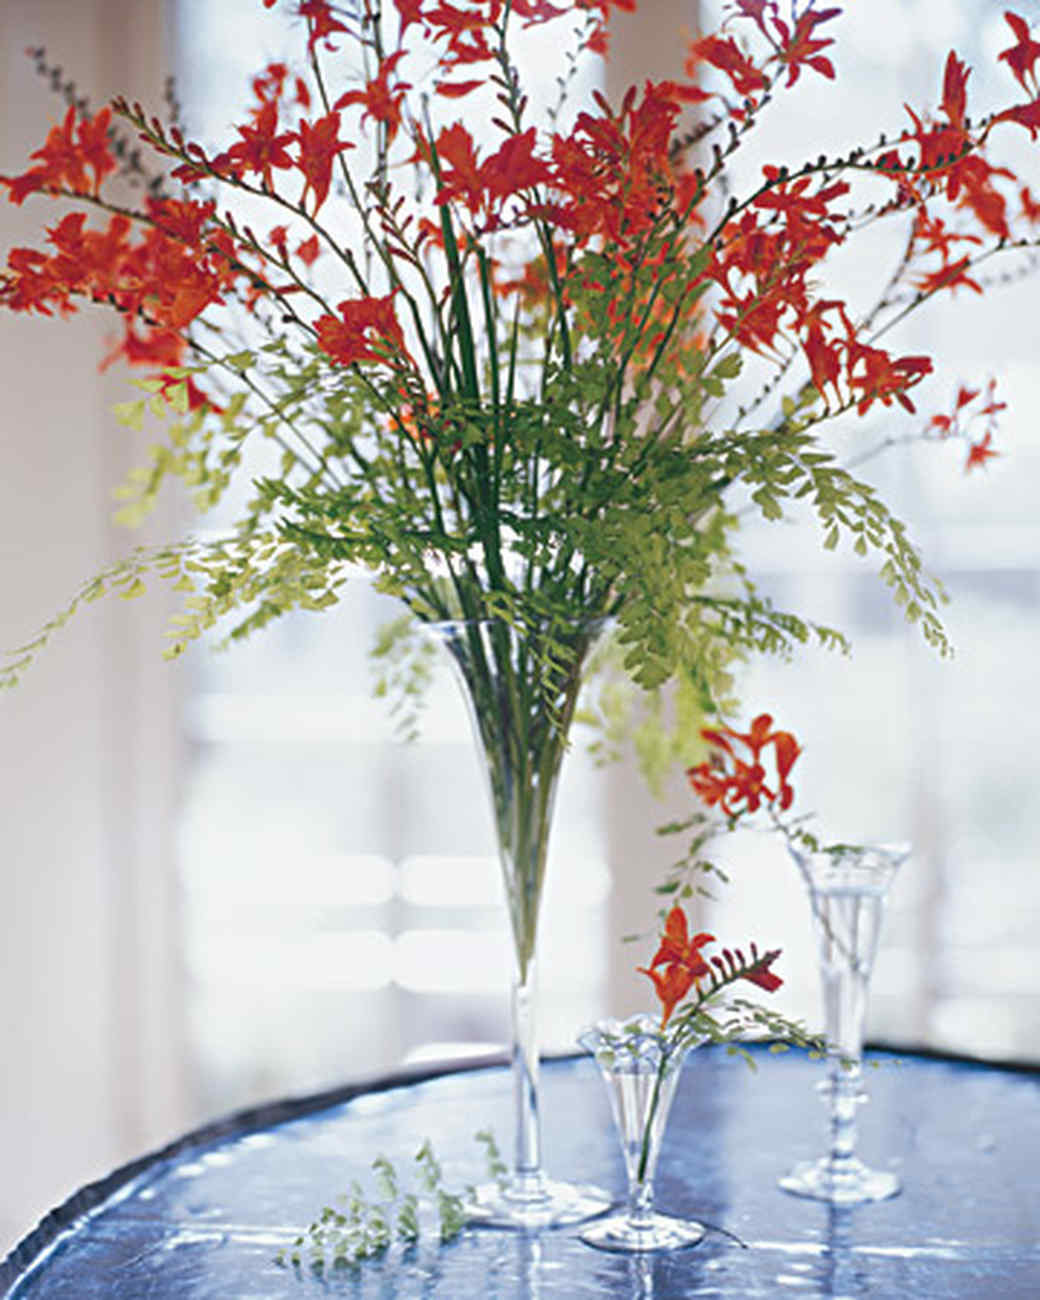 fish bowl vase decoration ideas of marthas flower arranging secrets martha stewart throughout lesson 3